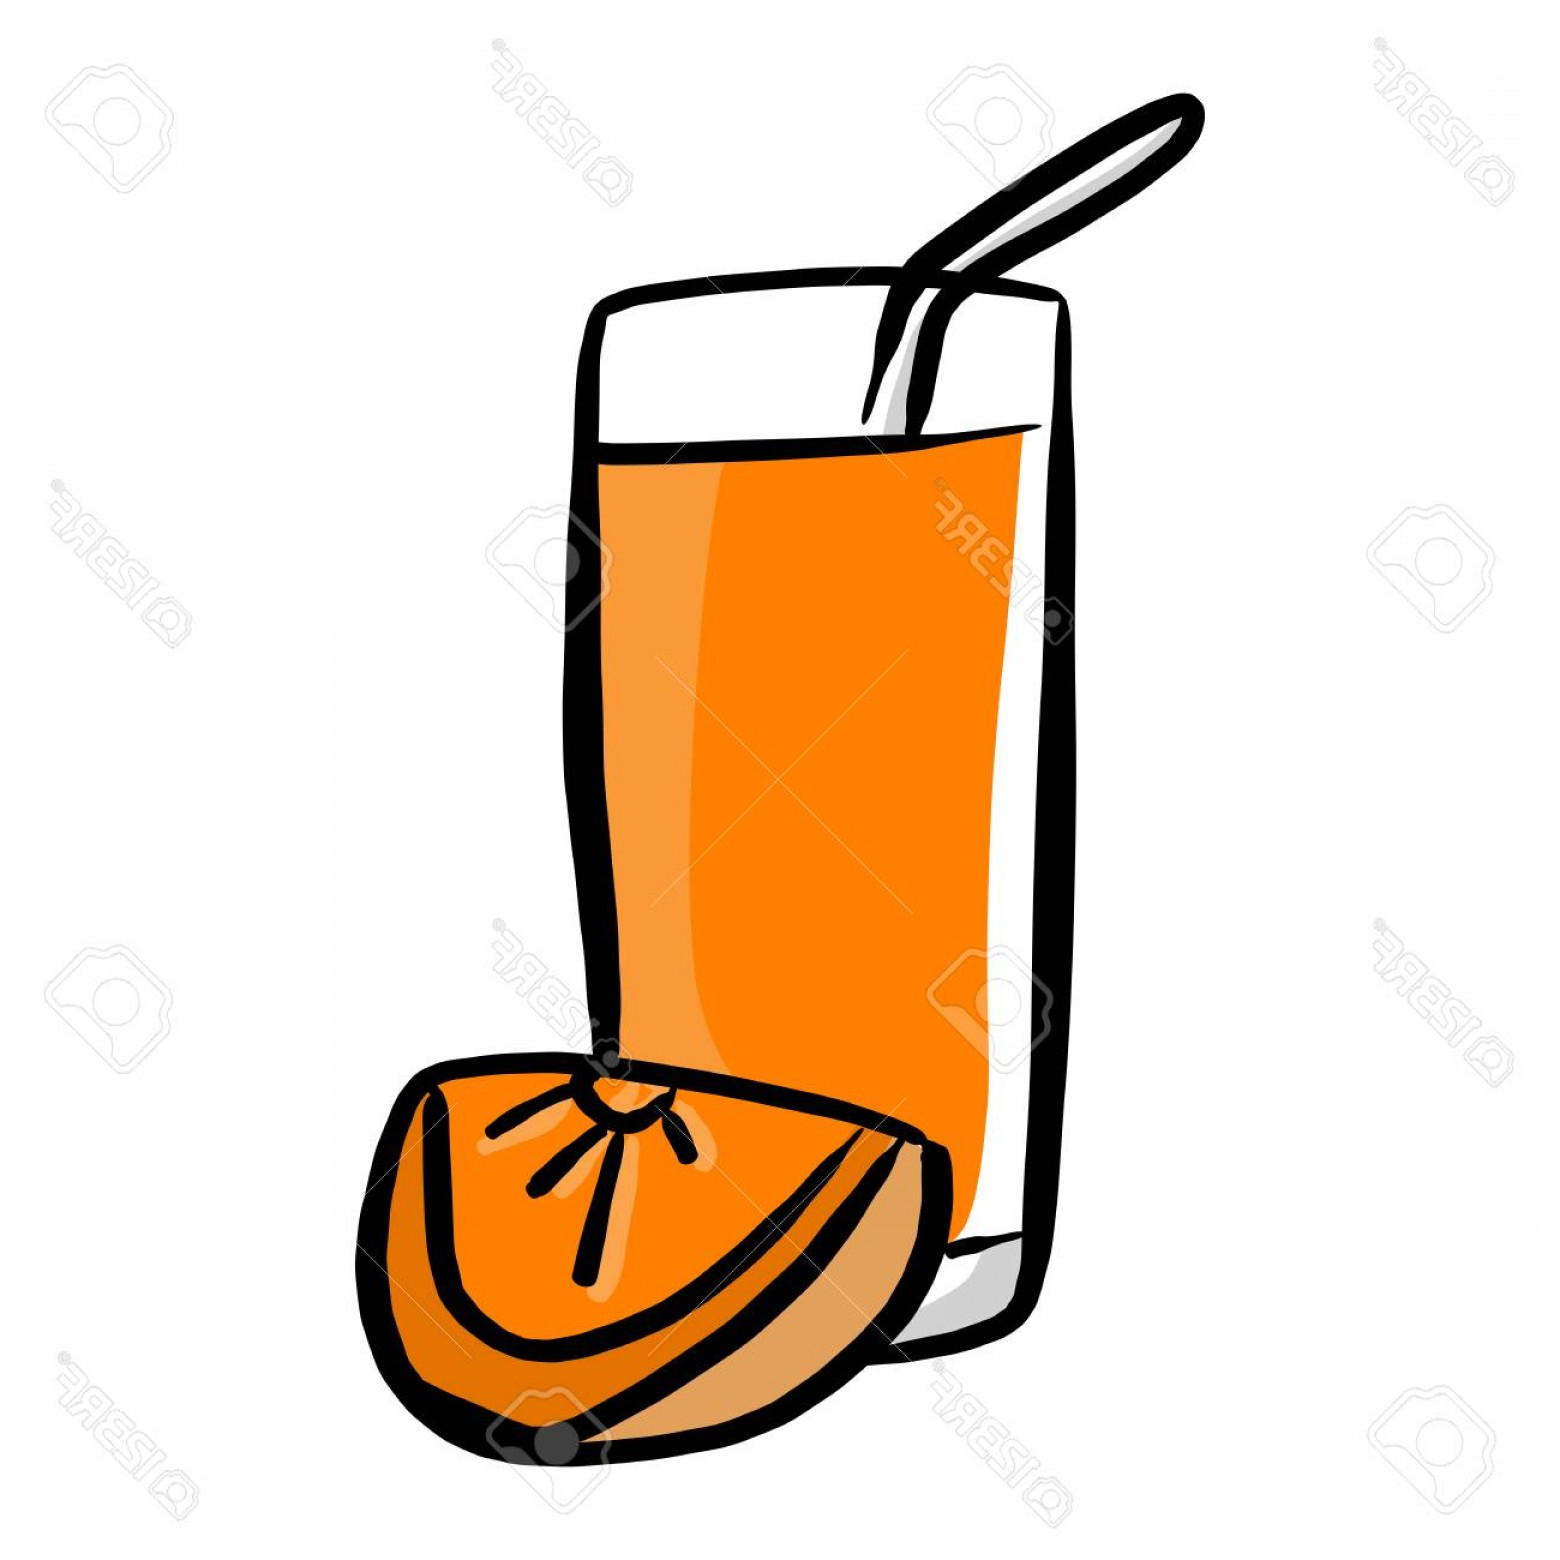 Juice Vector Black: Photostock Vector Orange Juice Vector Illustration Sketch Hand Drawn With Black Lines Isolated On White Background